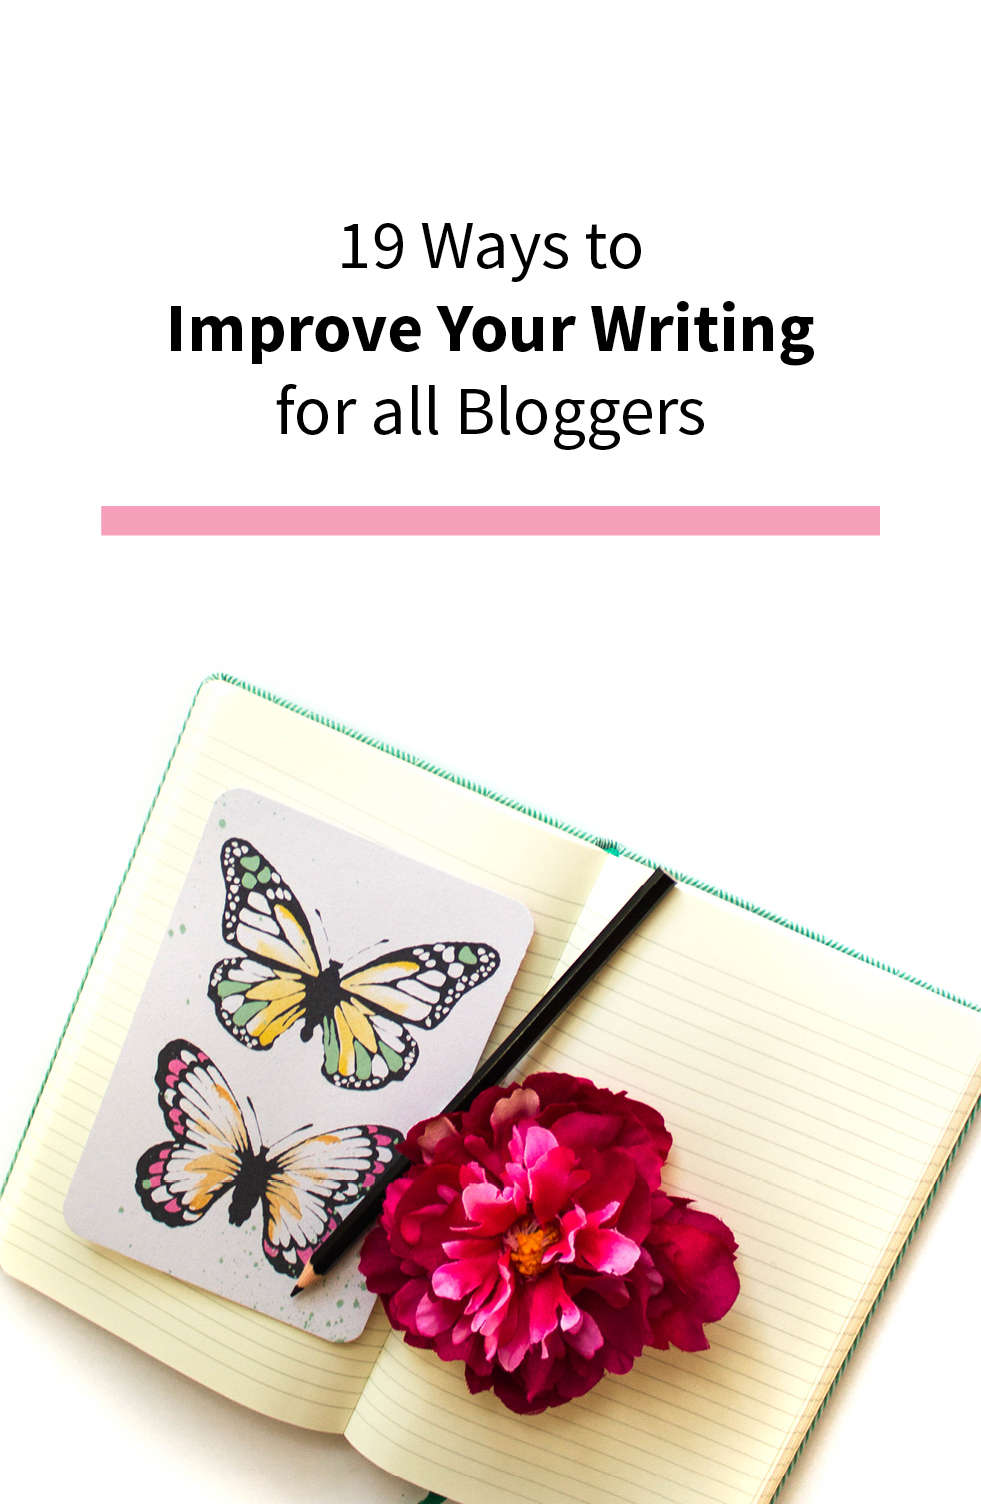 How to Improve Your Writing for All Bloggers